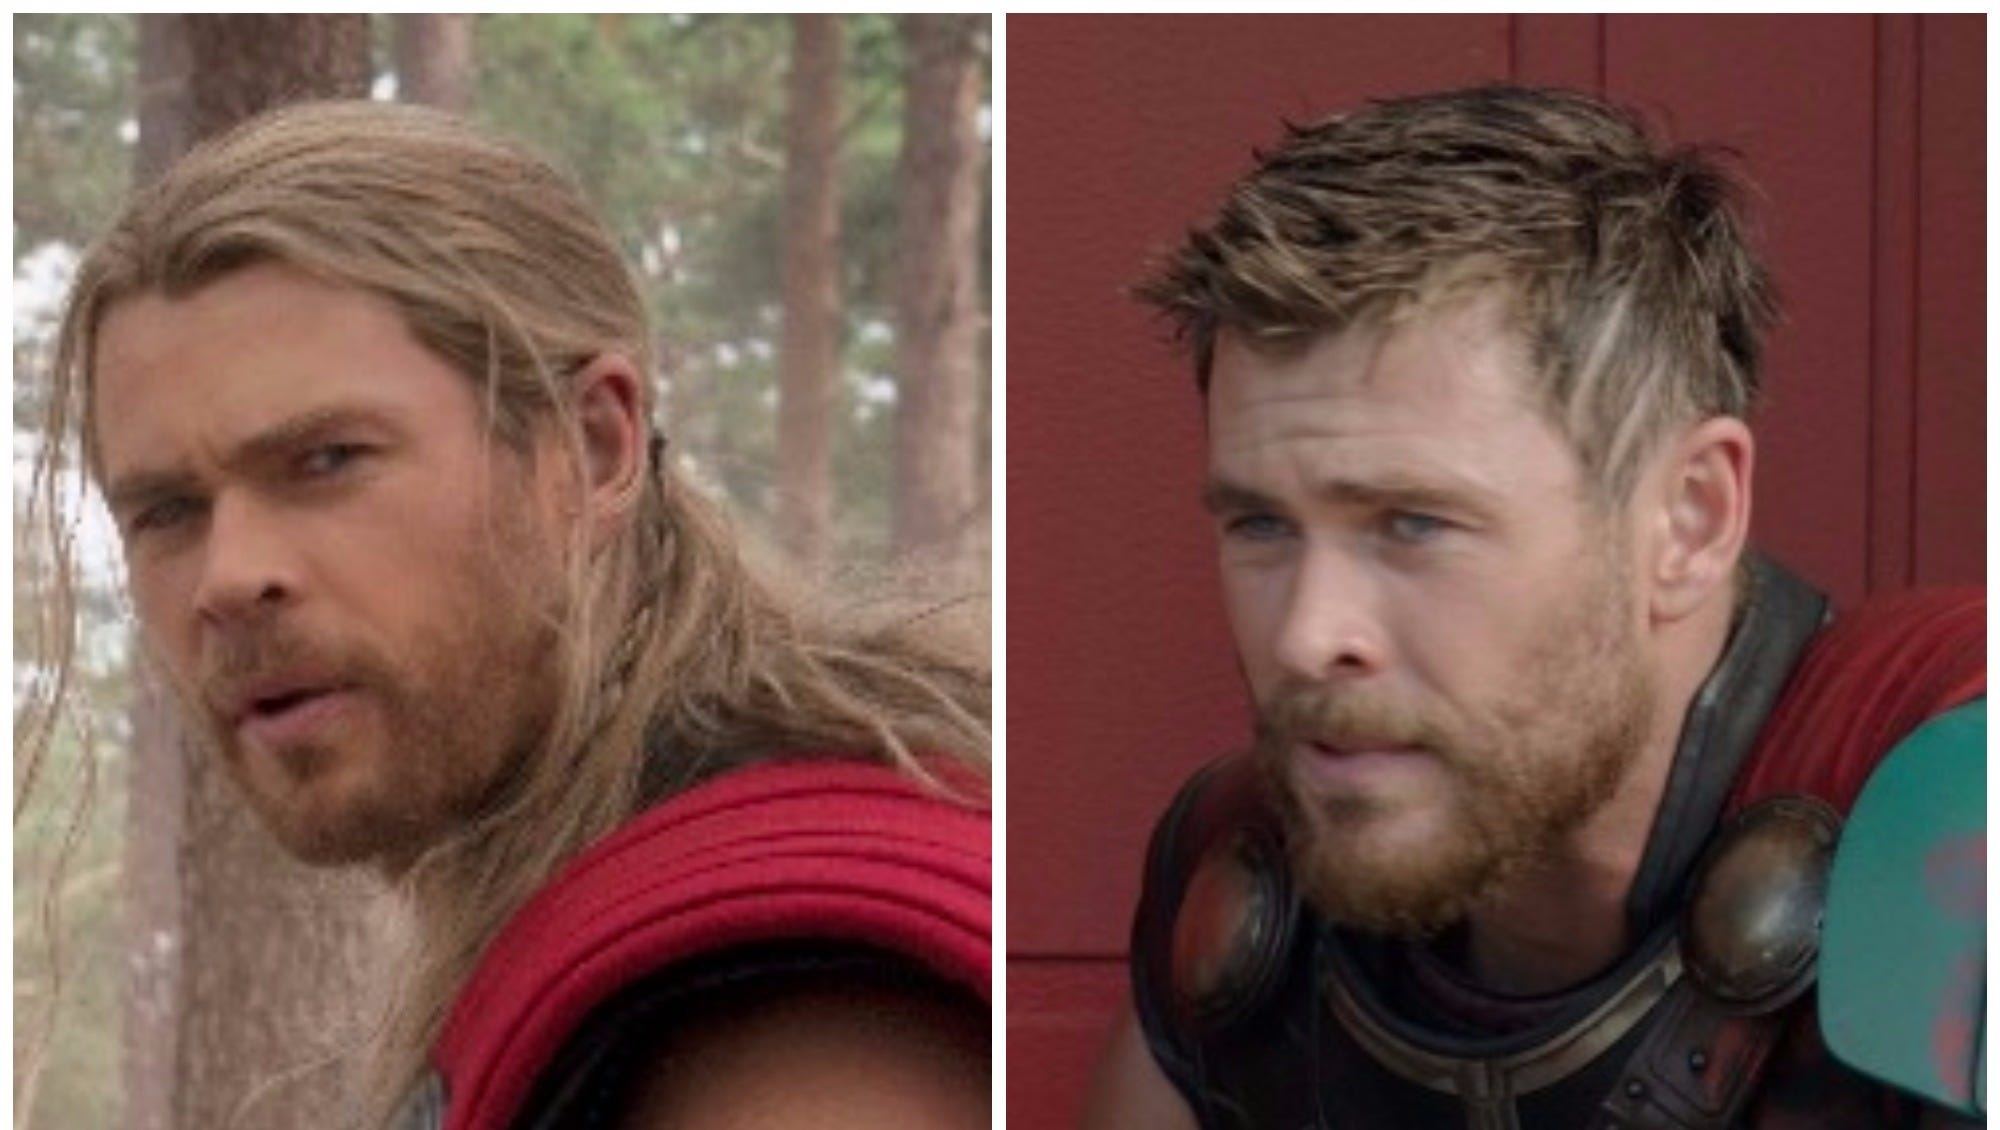 What's with Thor's short hair? 'Ragnarok' stylist explains ... on thor beautiful planet, superman's home planet, spock's home planet, thor's home city, thor's home asgard, cartoon thor home planet,